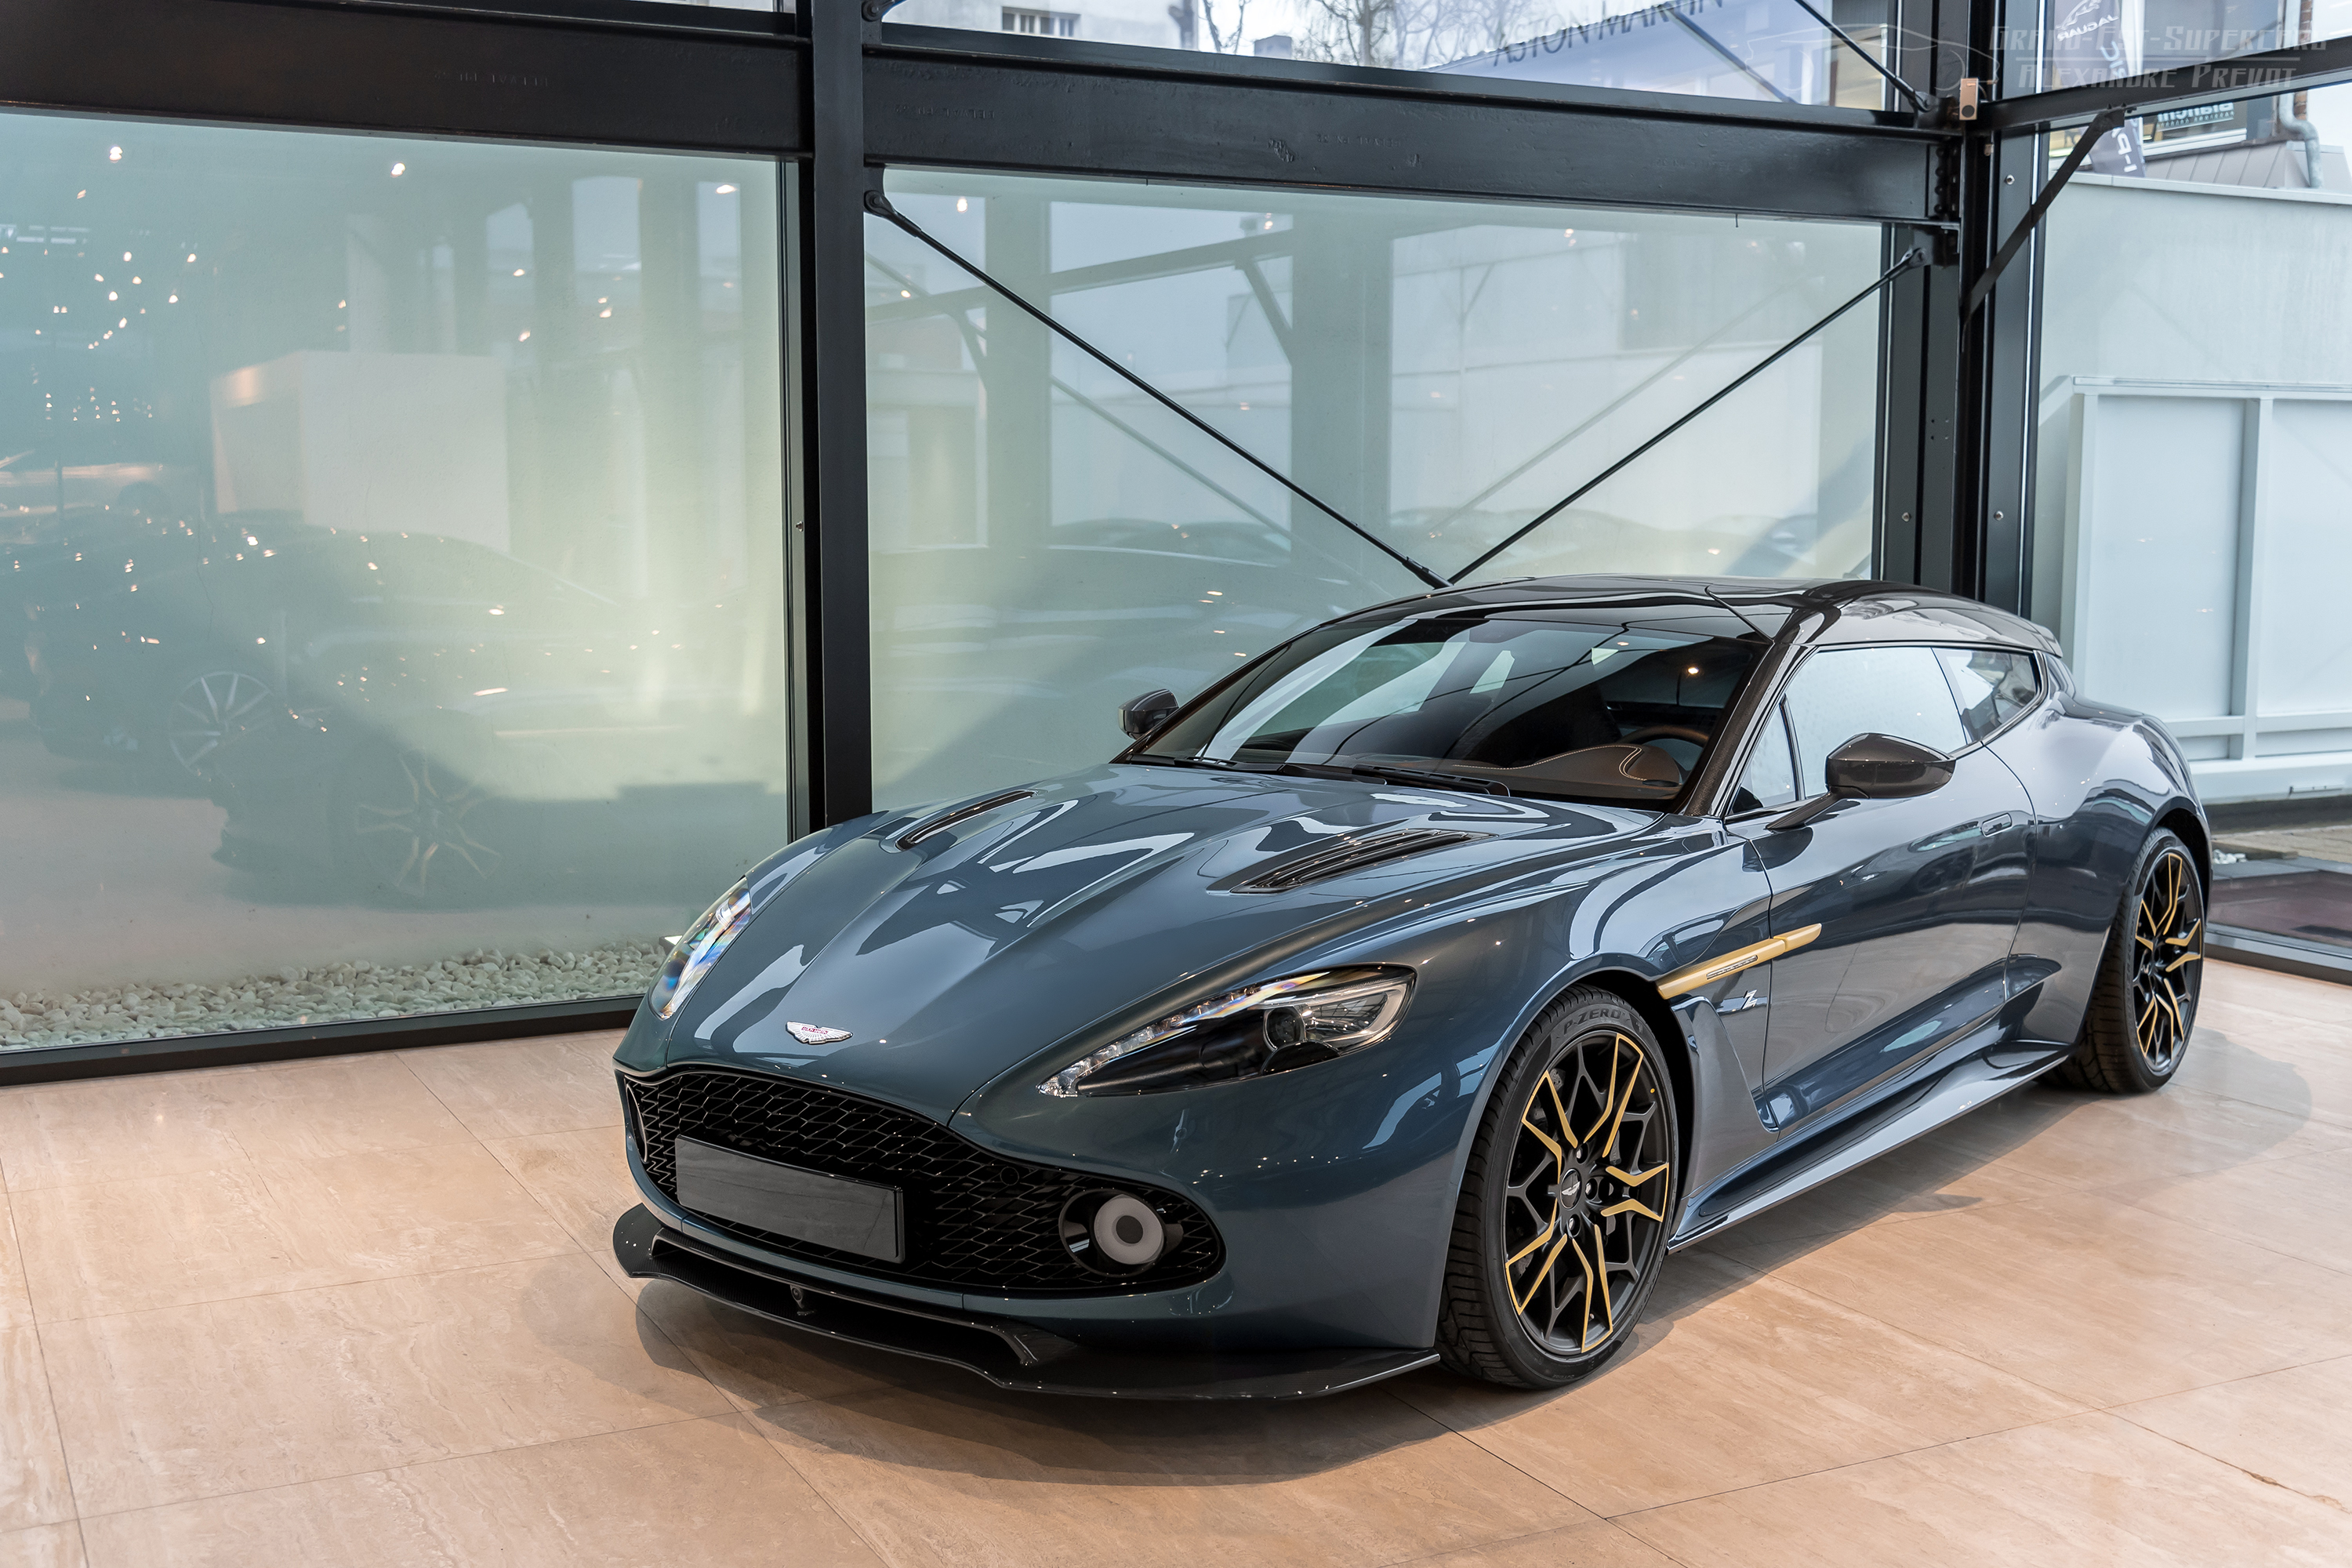 File Aston Martin Vanquish Zagato Shooting Brake 46835725372 Jpg Wikimedia Commons